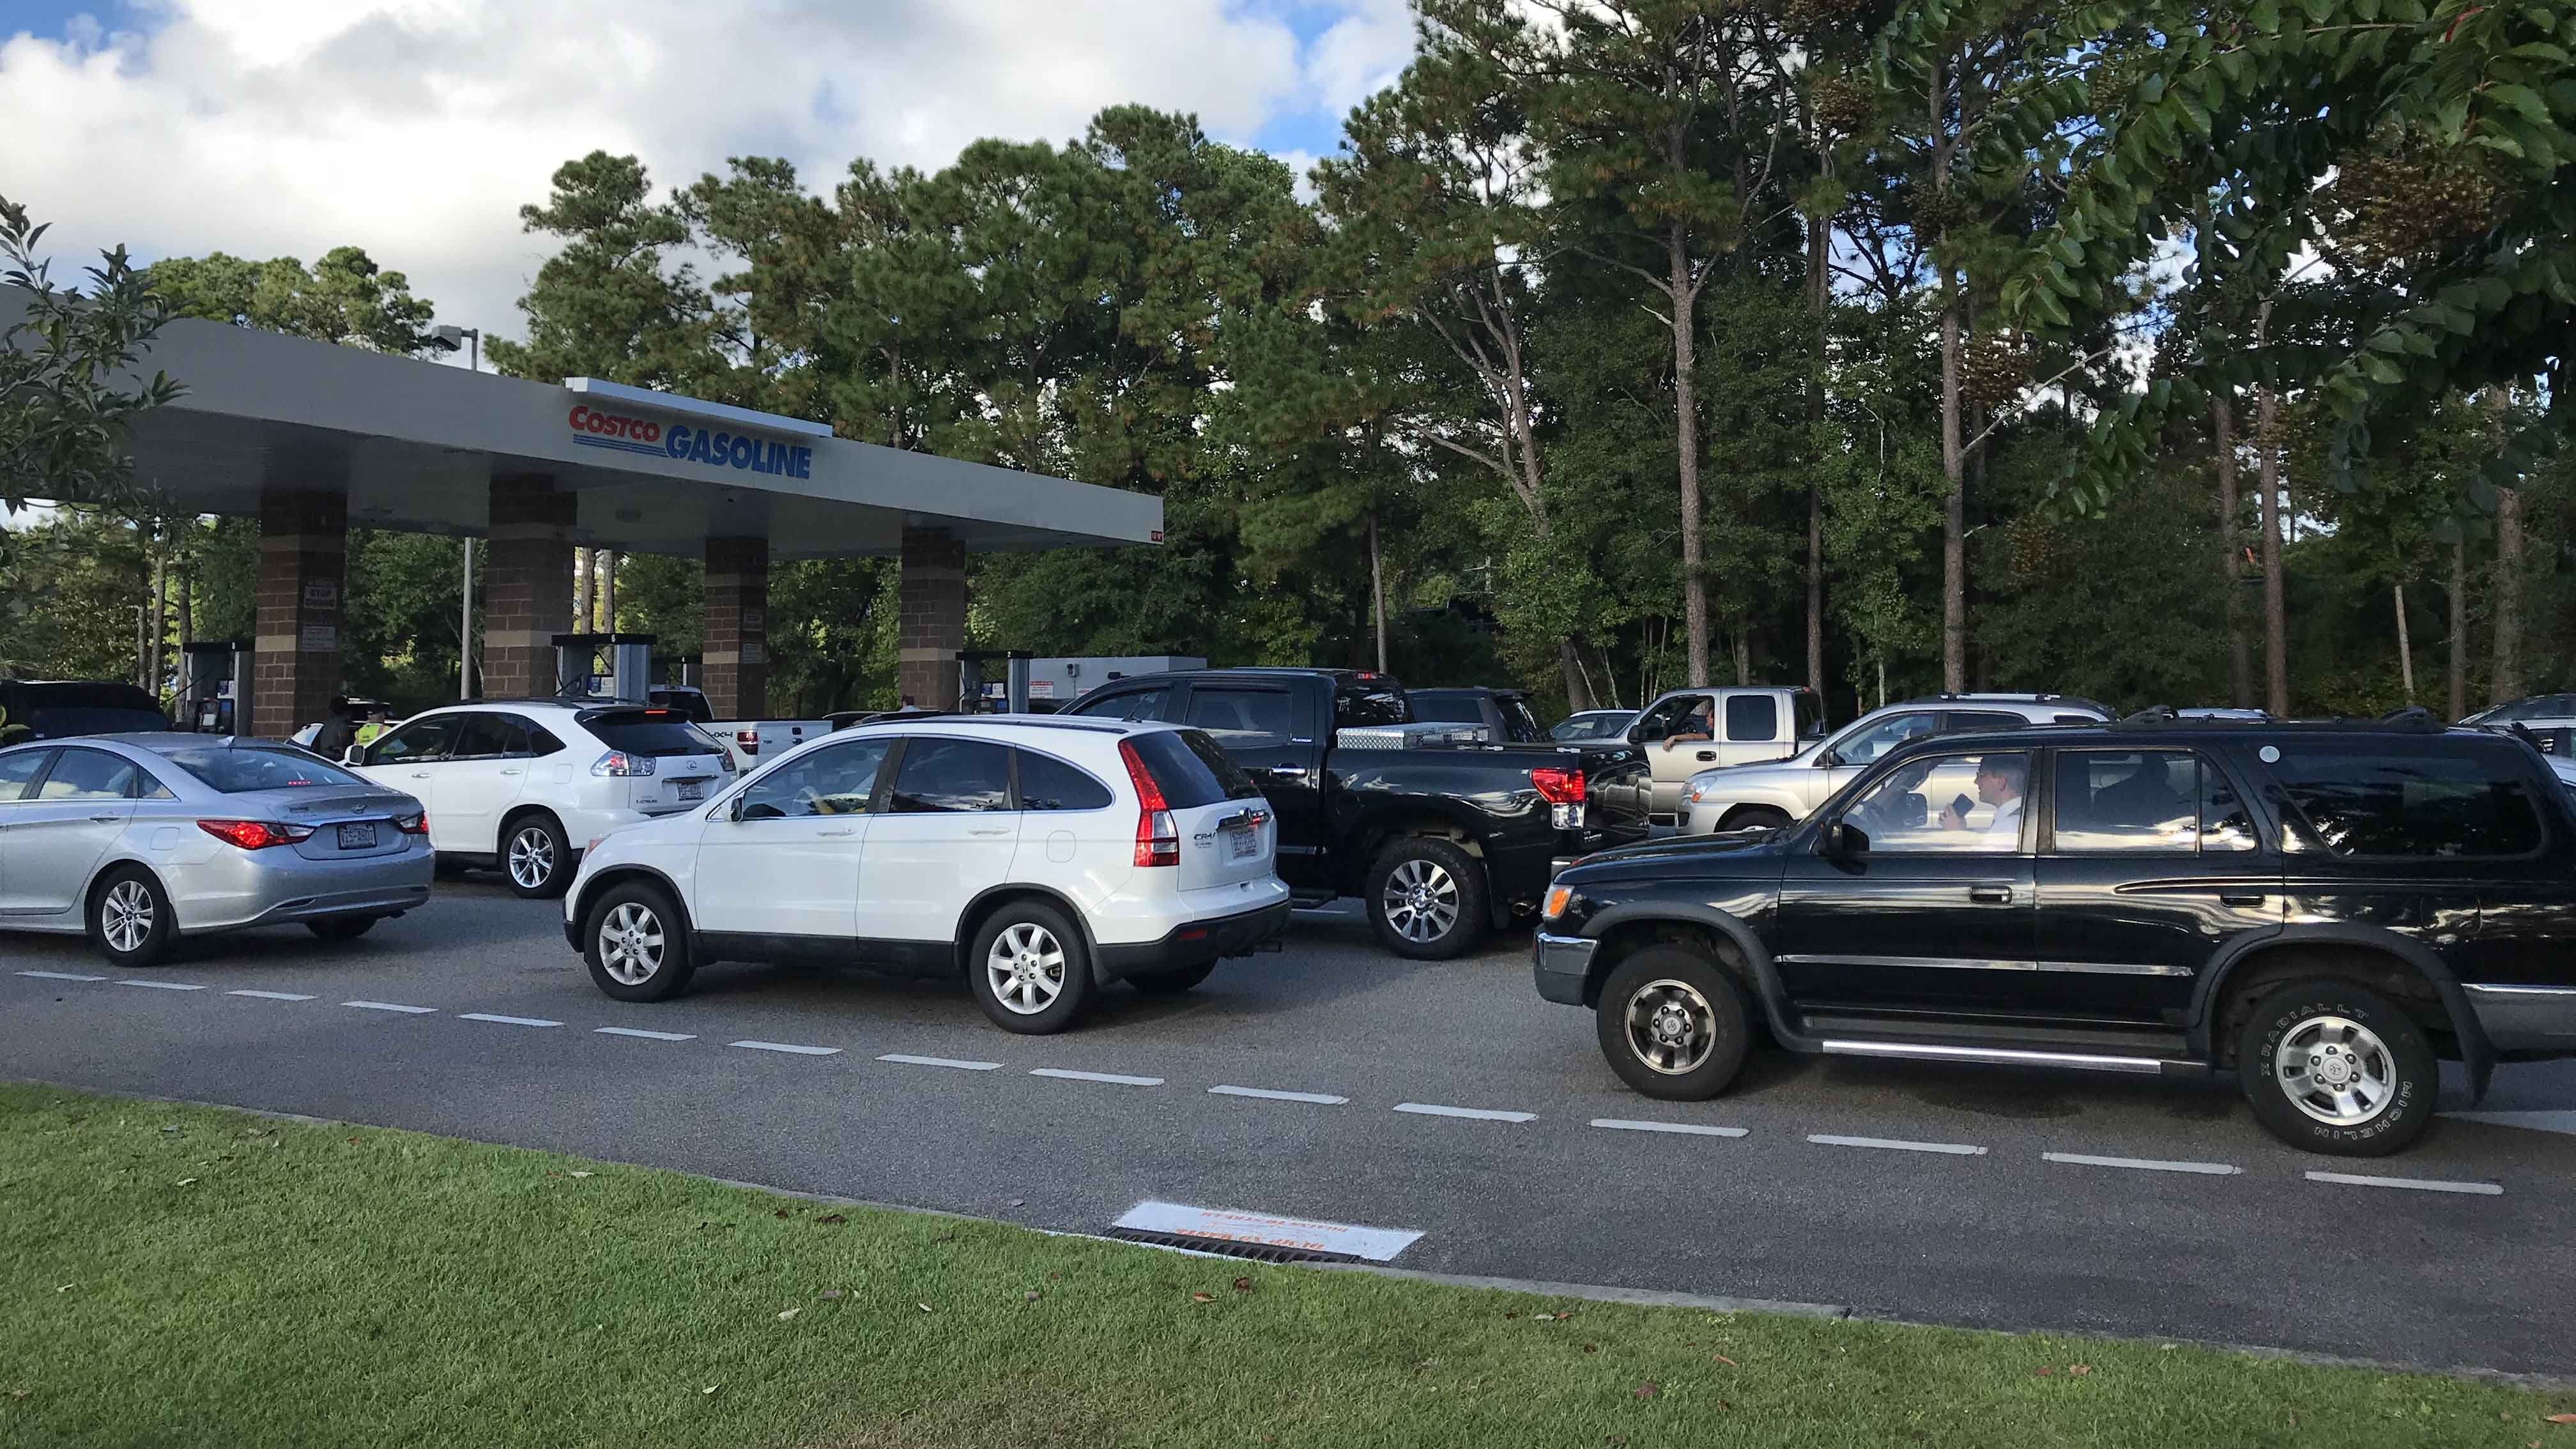 Cars line up outside a Costco to gas up before Hurricane Florence. (Kaylee Hartung/CNN)